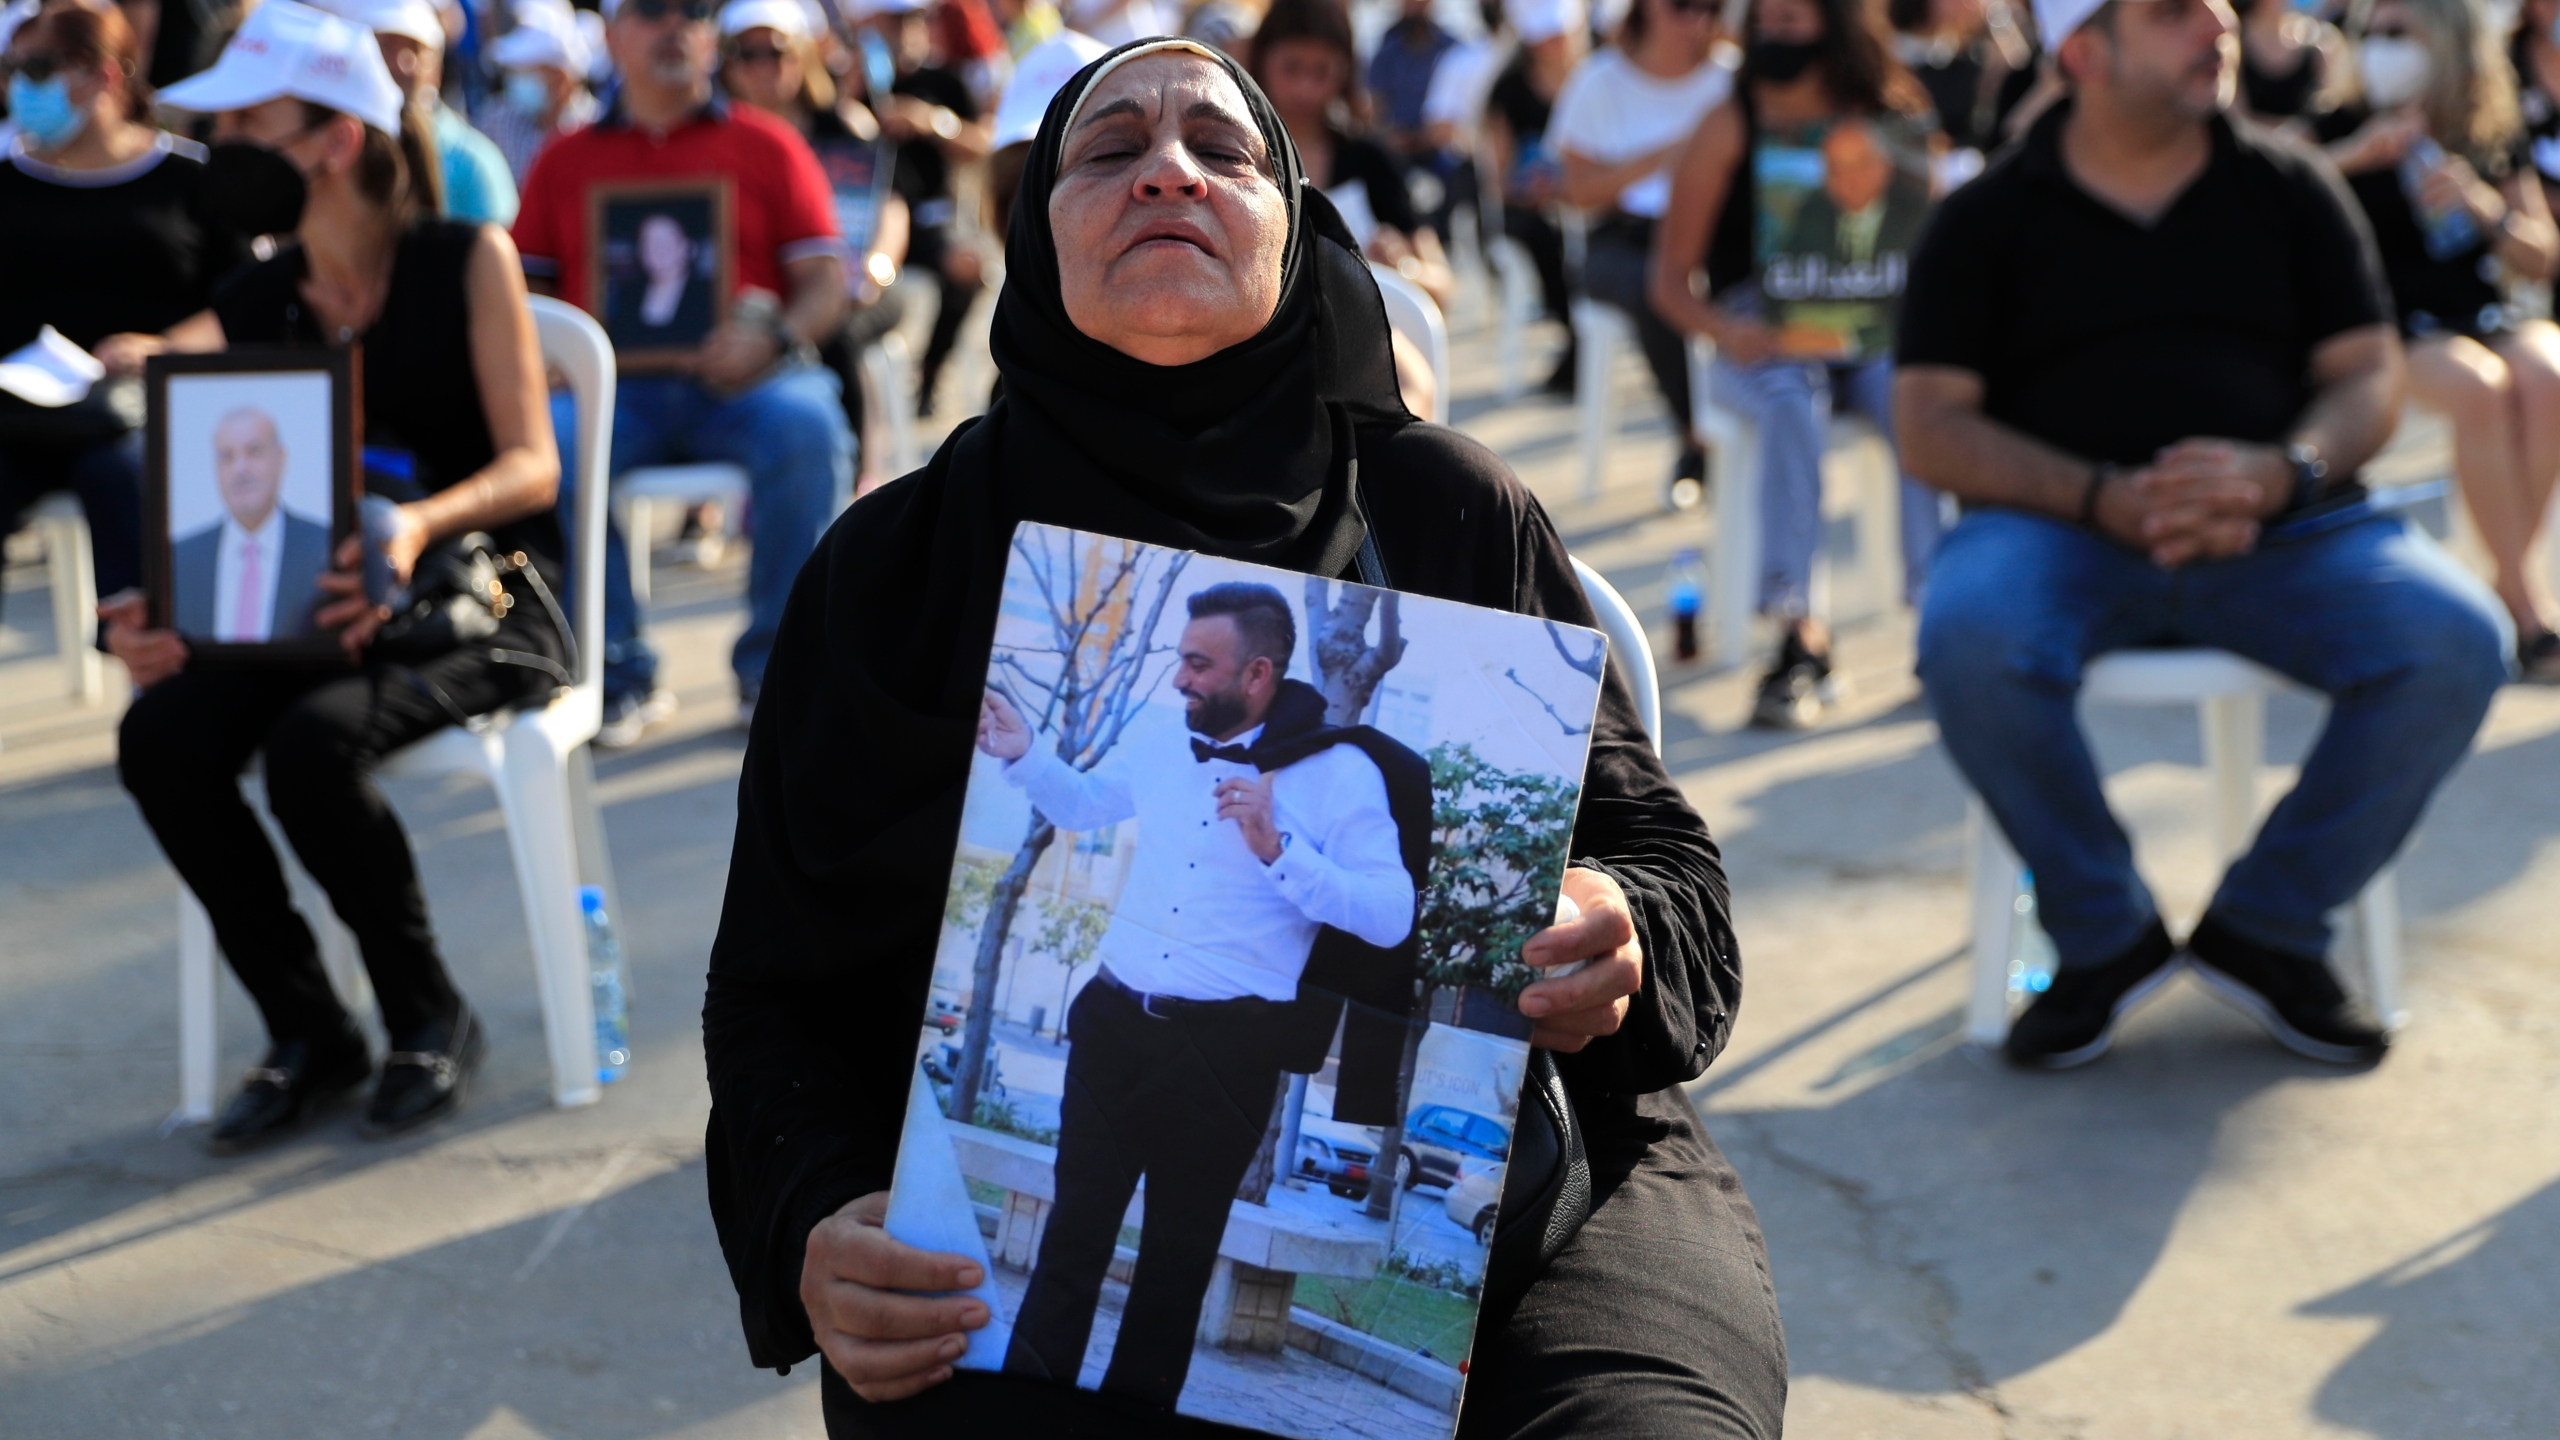 The mother of a victim who was killed in the massive blast last year at the Beirut port holds a portrait of her son as she attends a Mass held to commemorate the first year anniversary of the deadly blast, at the Beirut port in Lebanon on Aug. 4, 2021. United in grief and anger, families of the victims and other Lebanese came out into the streets of Beirut on Wednesday to demand accountability as banks, businesses and government offices shuttered to mark one year since the horrific explosion. (AP Photo/Hussein Malla)